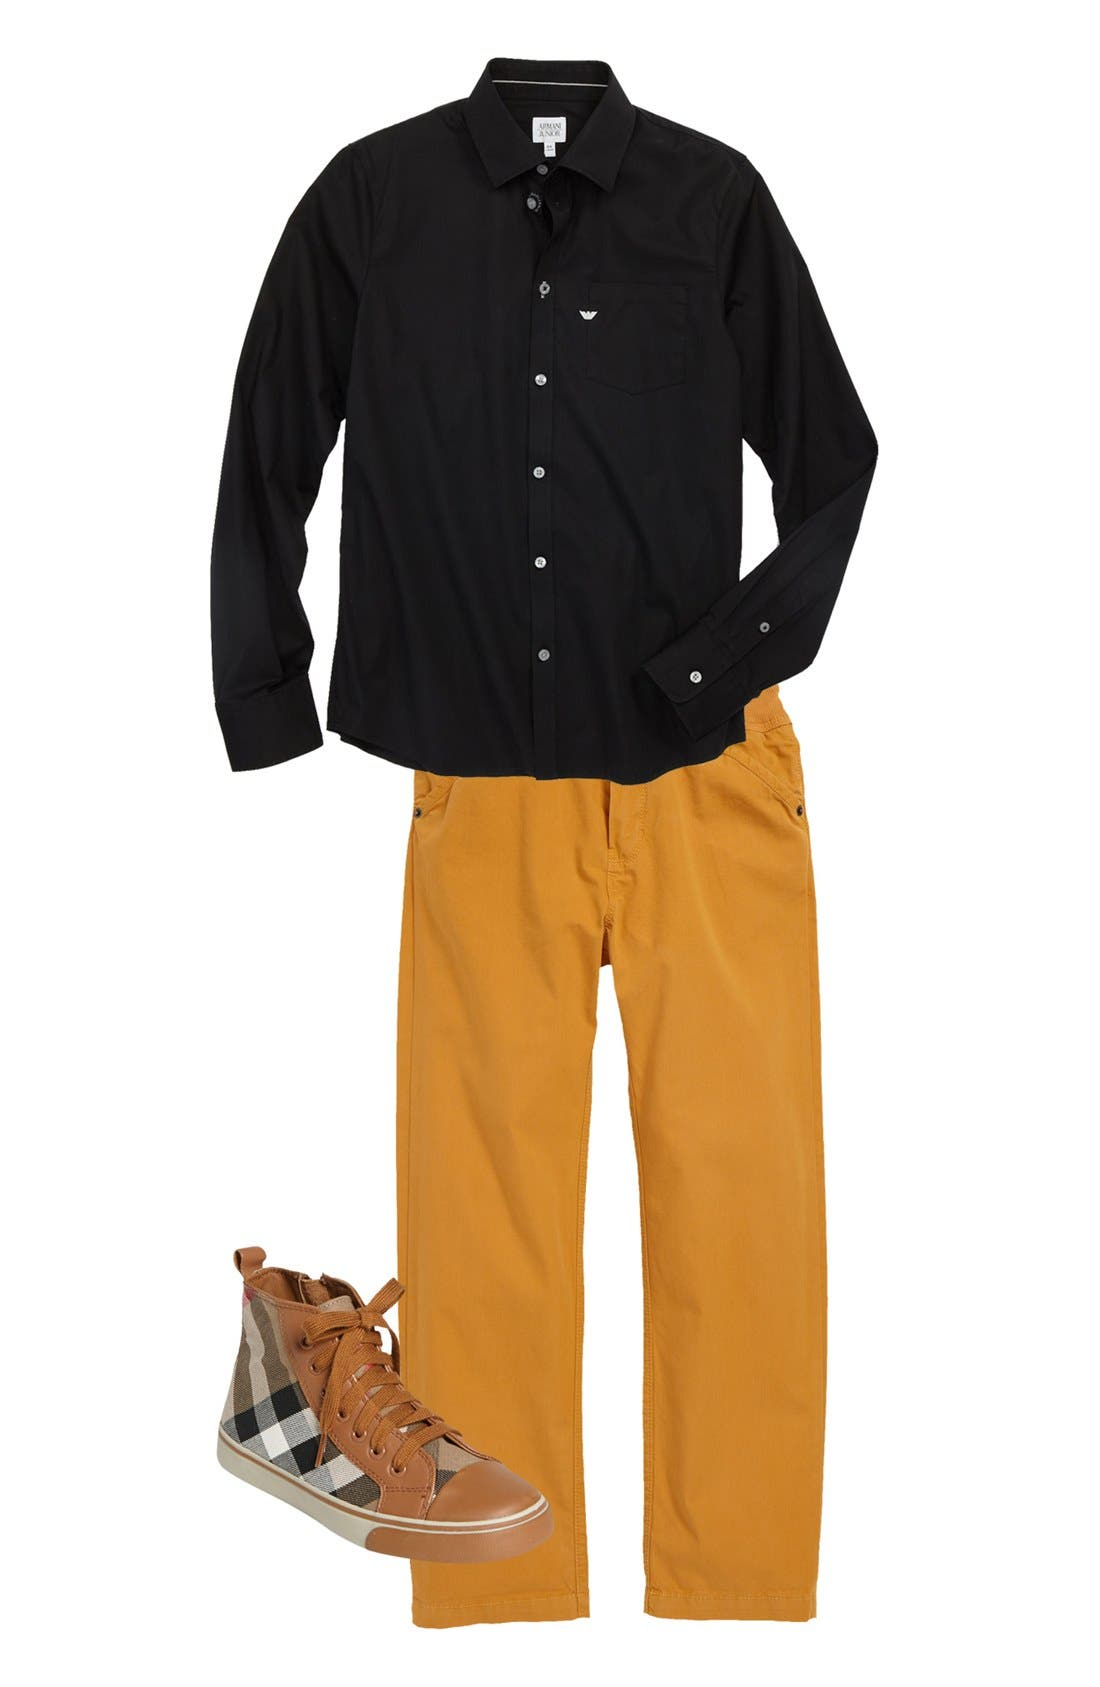 Alternate Image 1 Selected - Armani Junior Shirt, LITTLE MARC JACOBS Pants & Burberry Sneaker (Big Boys)